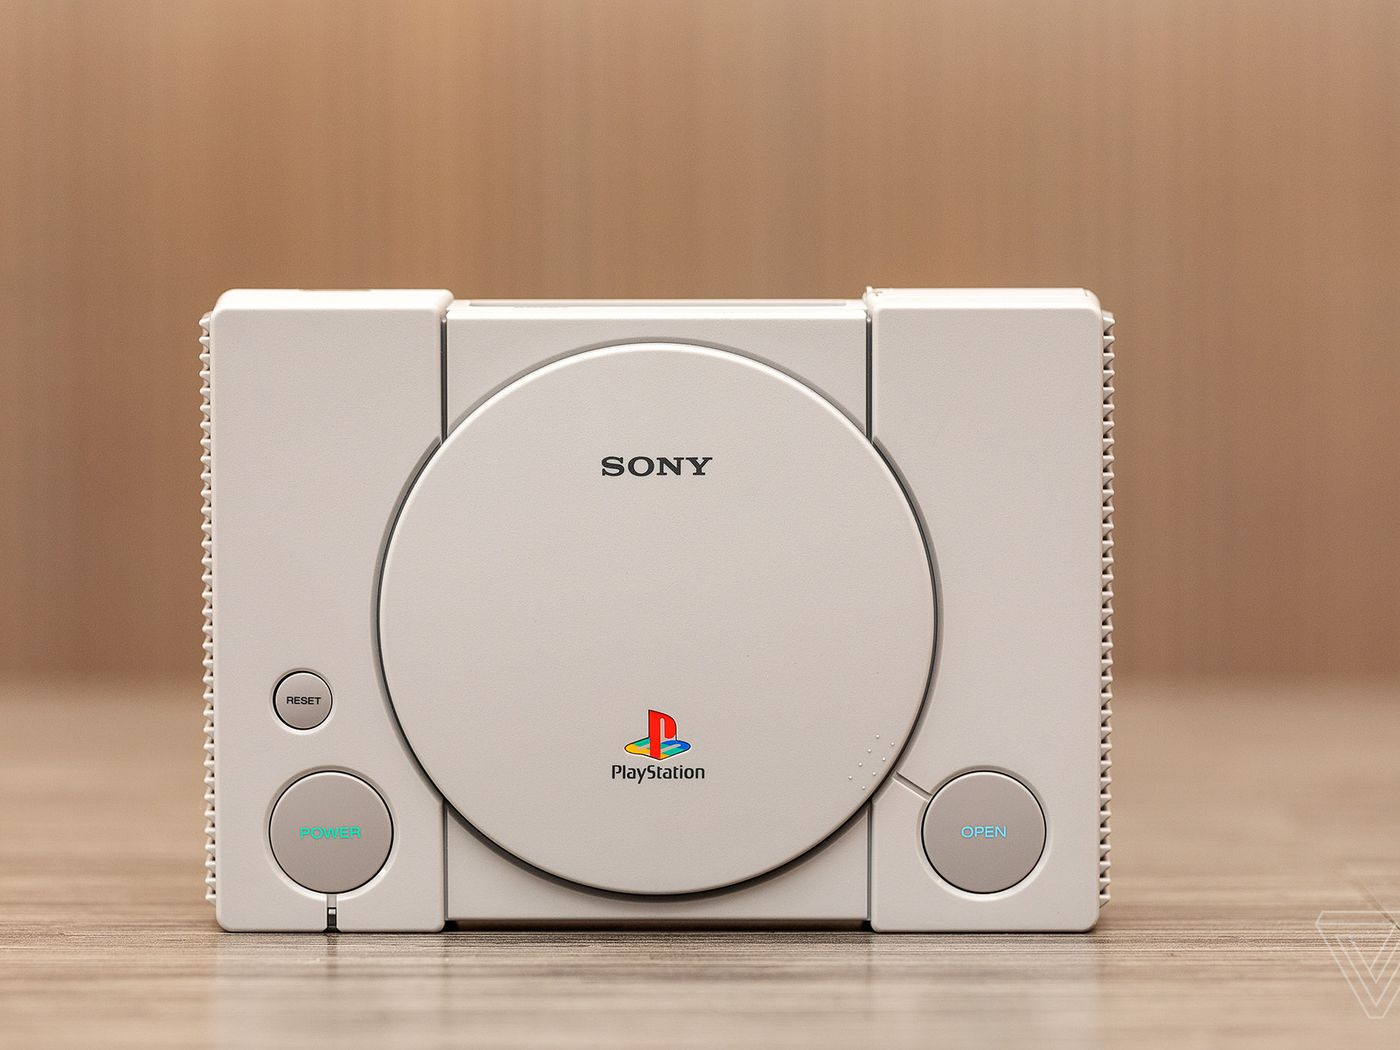 The PlayStation Classic has already been hacked to run games